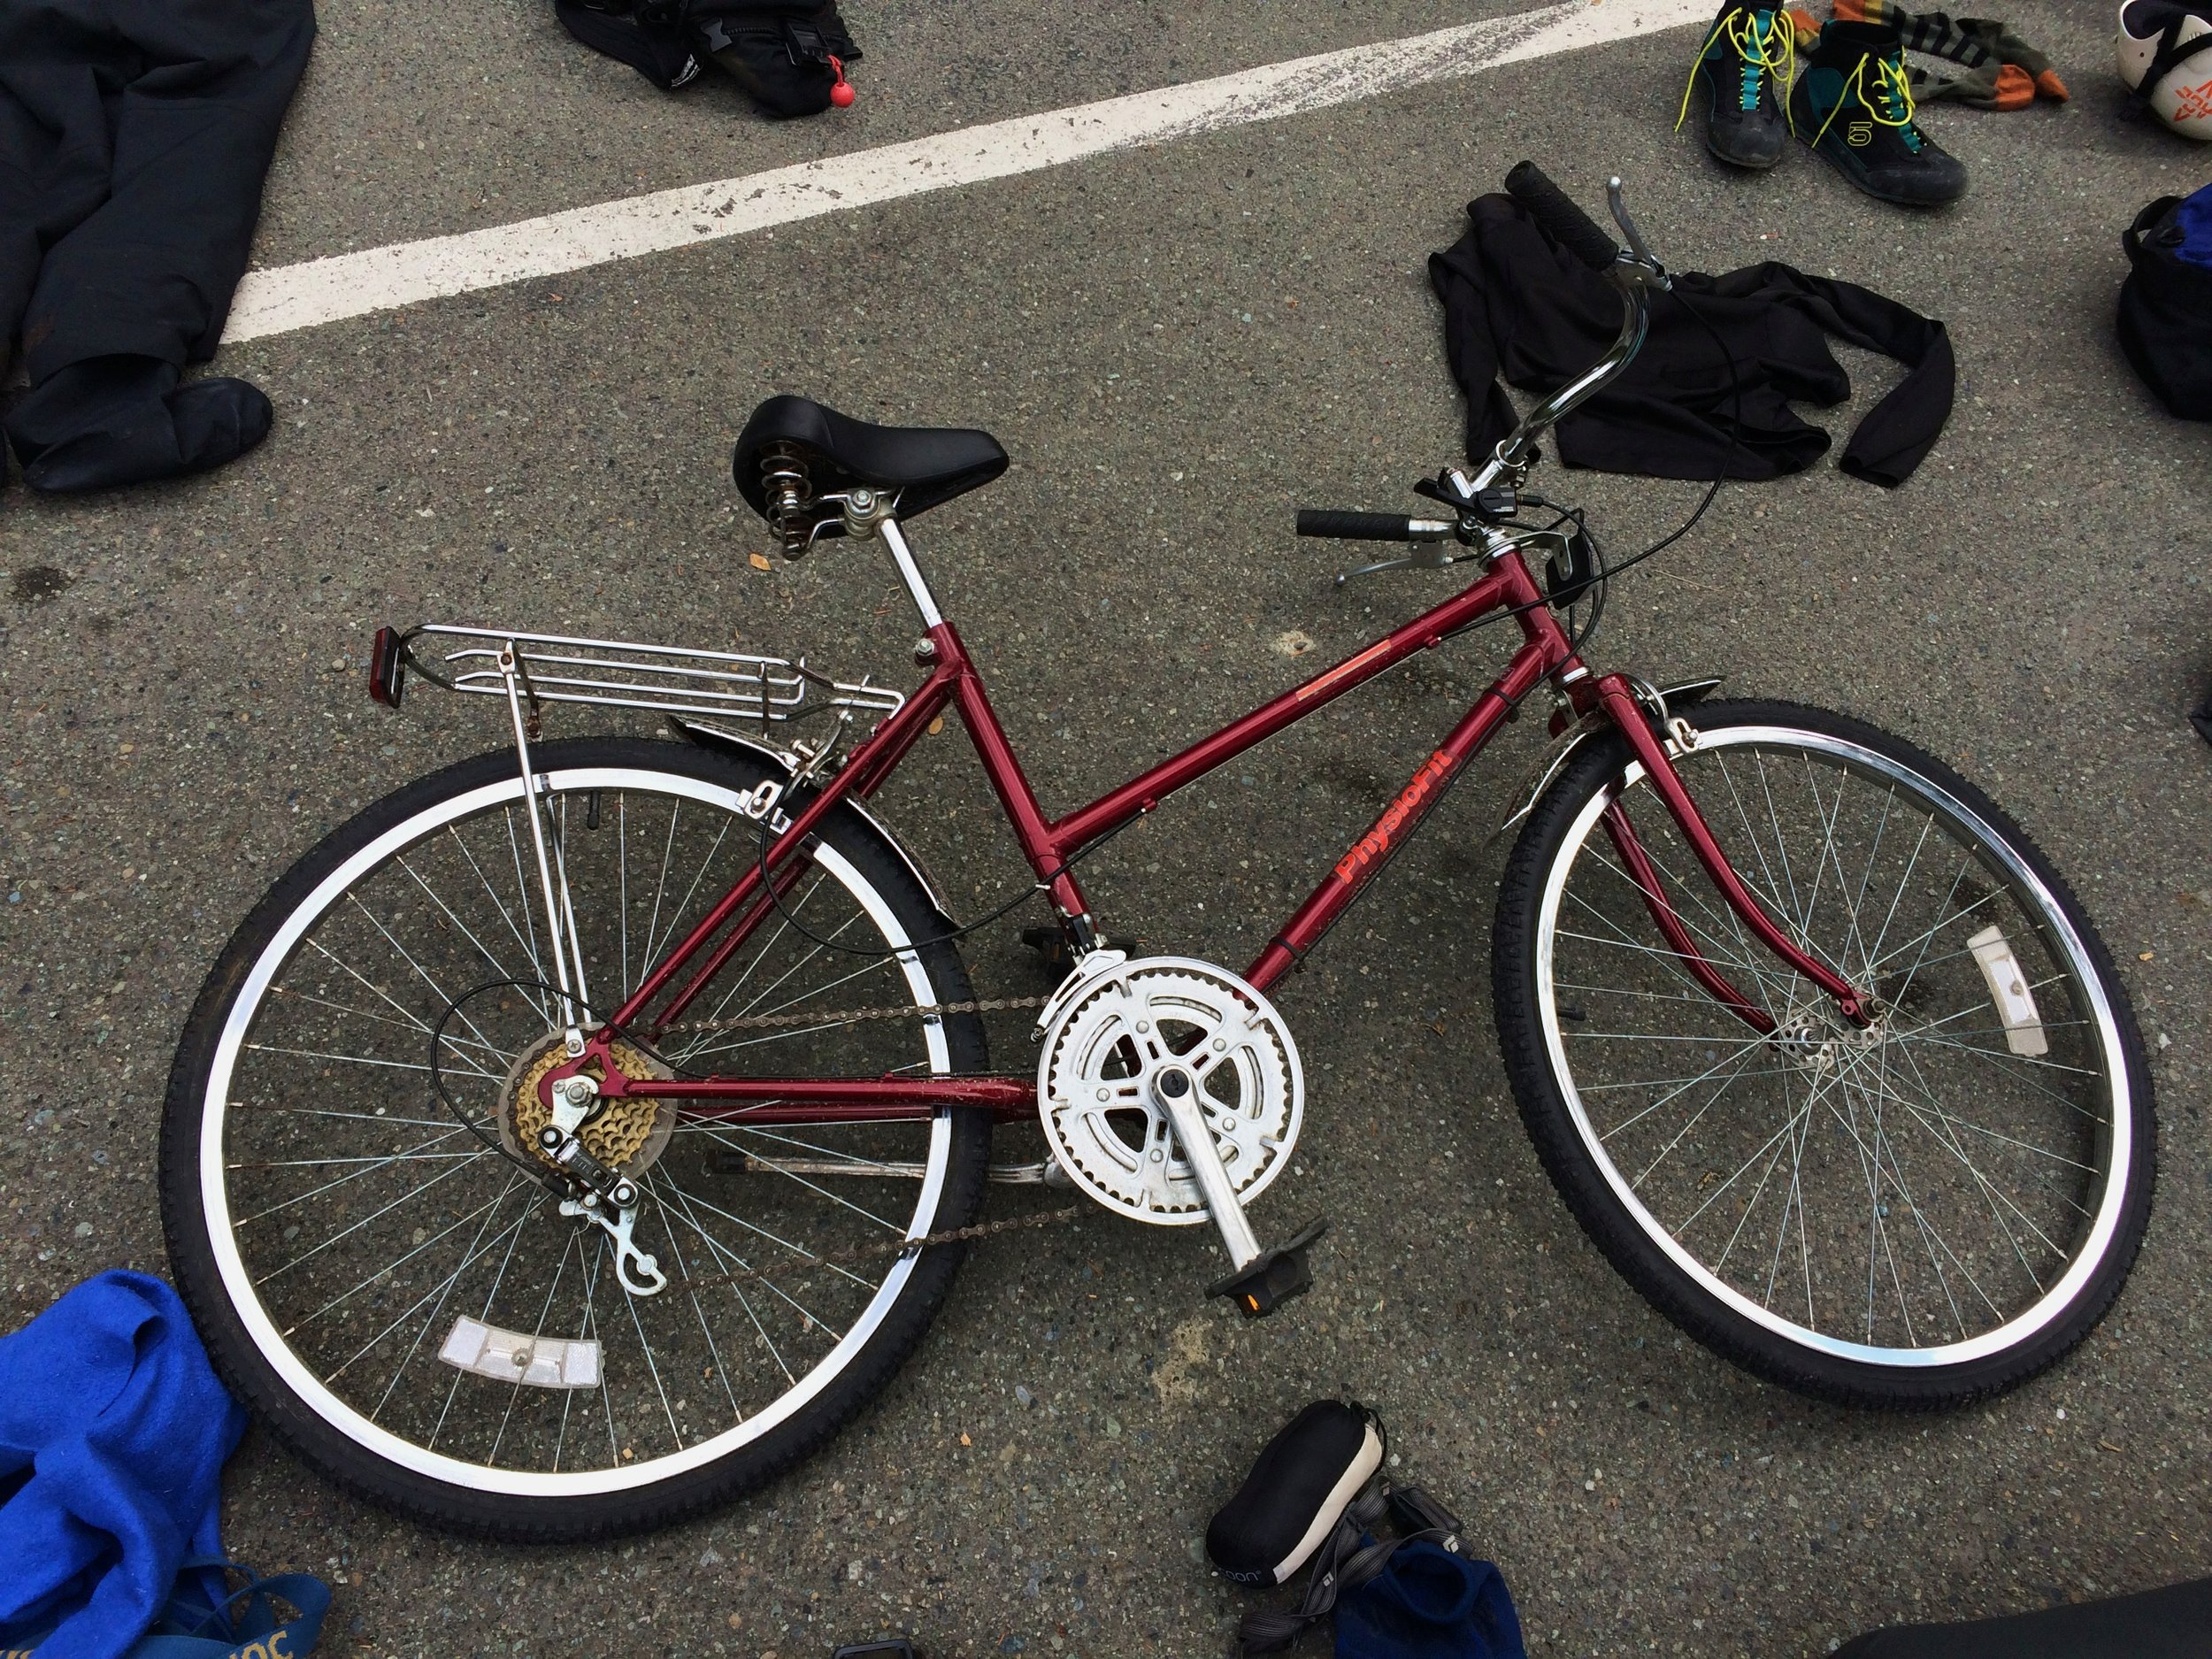 Lil' Red - I miss this sweet little bike.